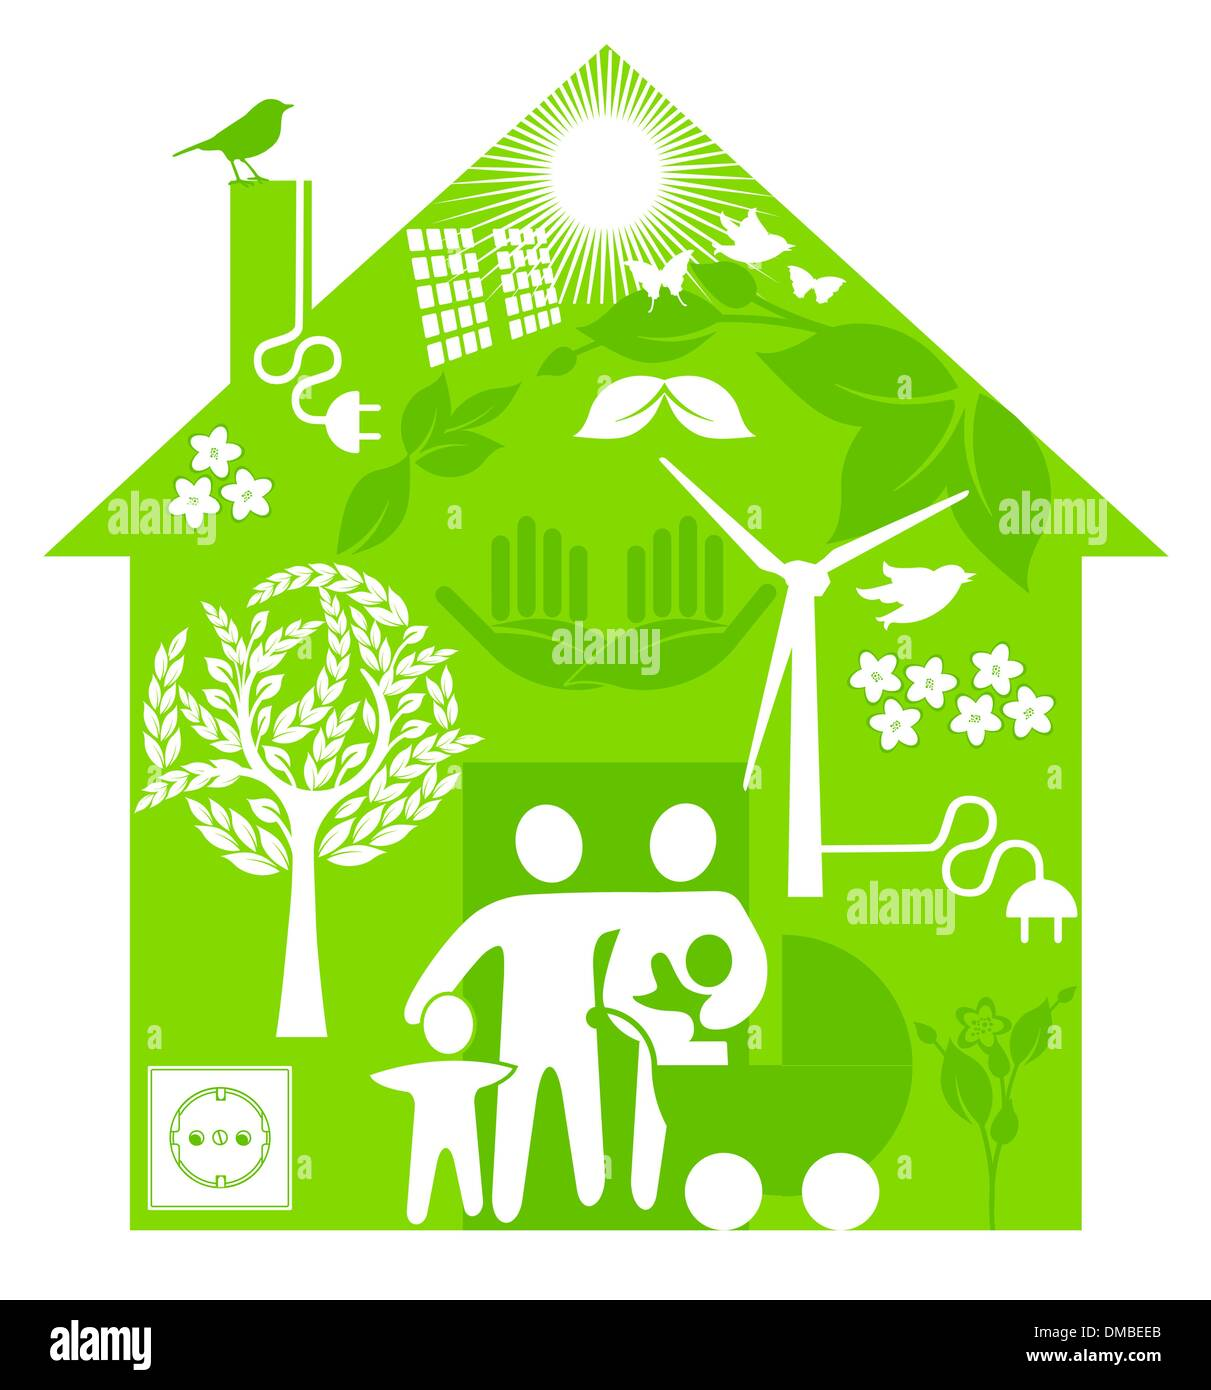 ecological home - Stock Image